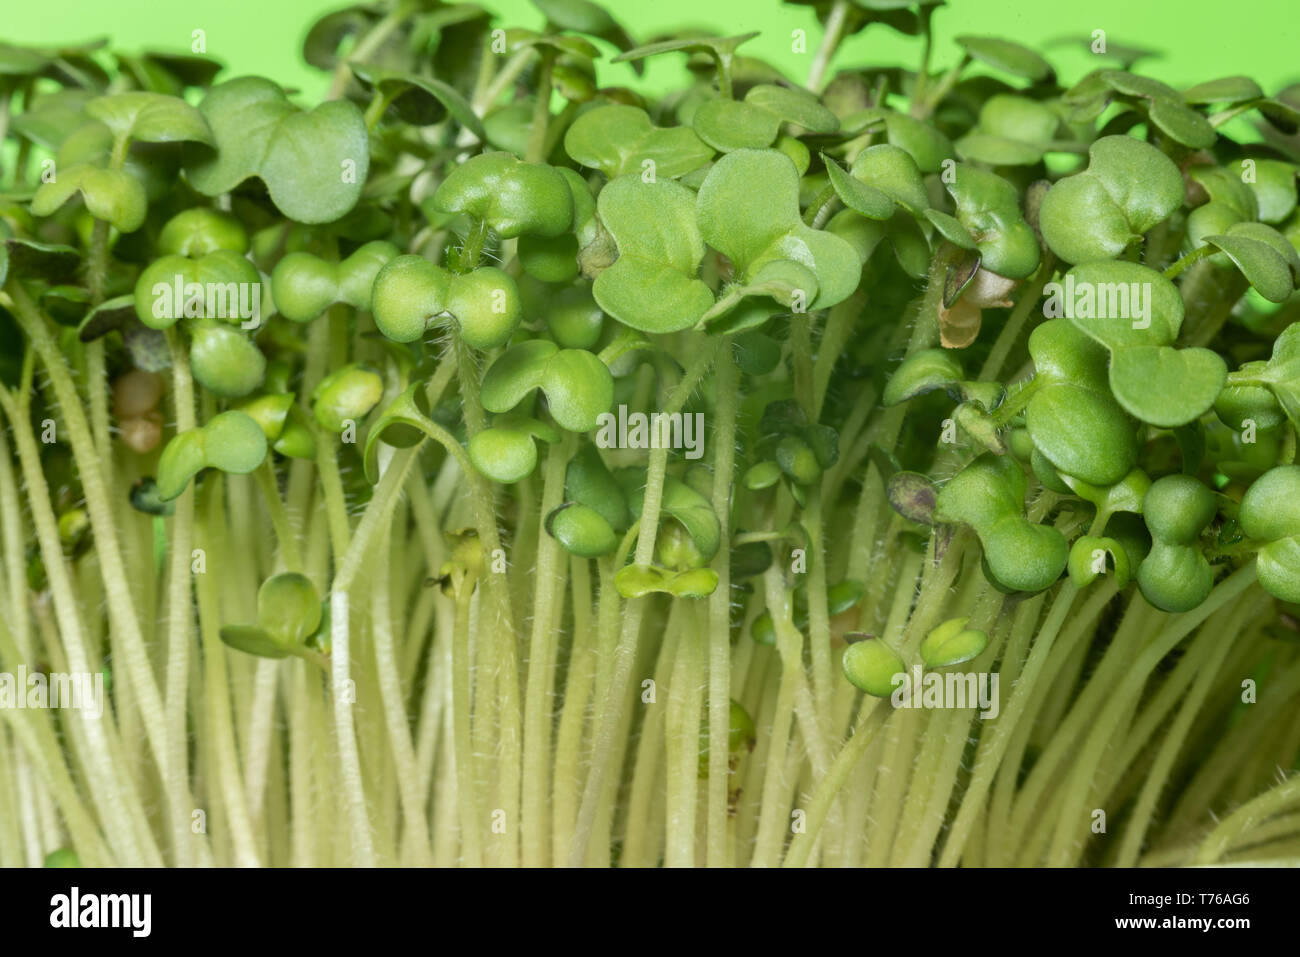 Mustard germs with green leaves from front Stock Photo